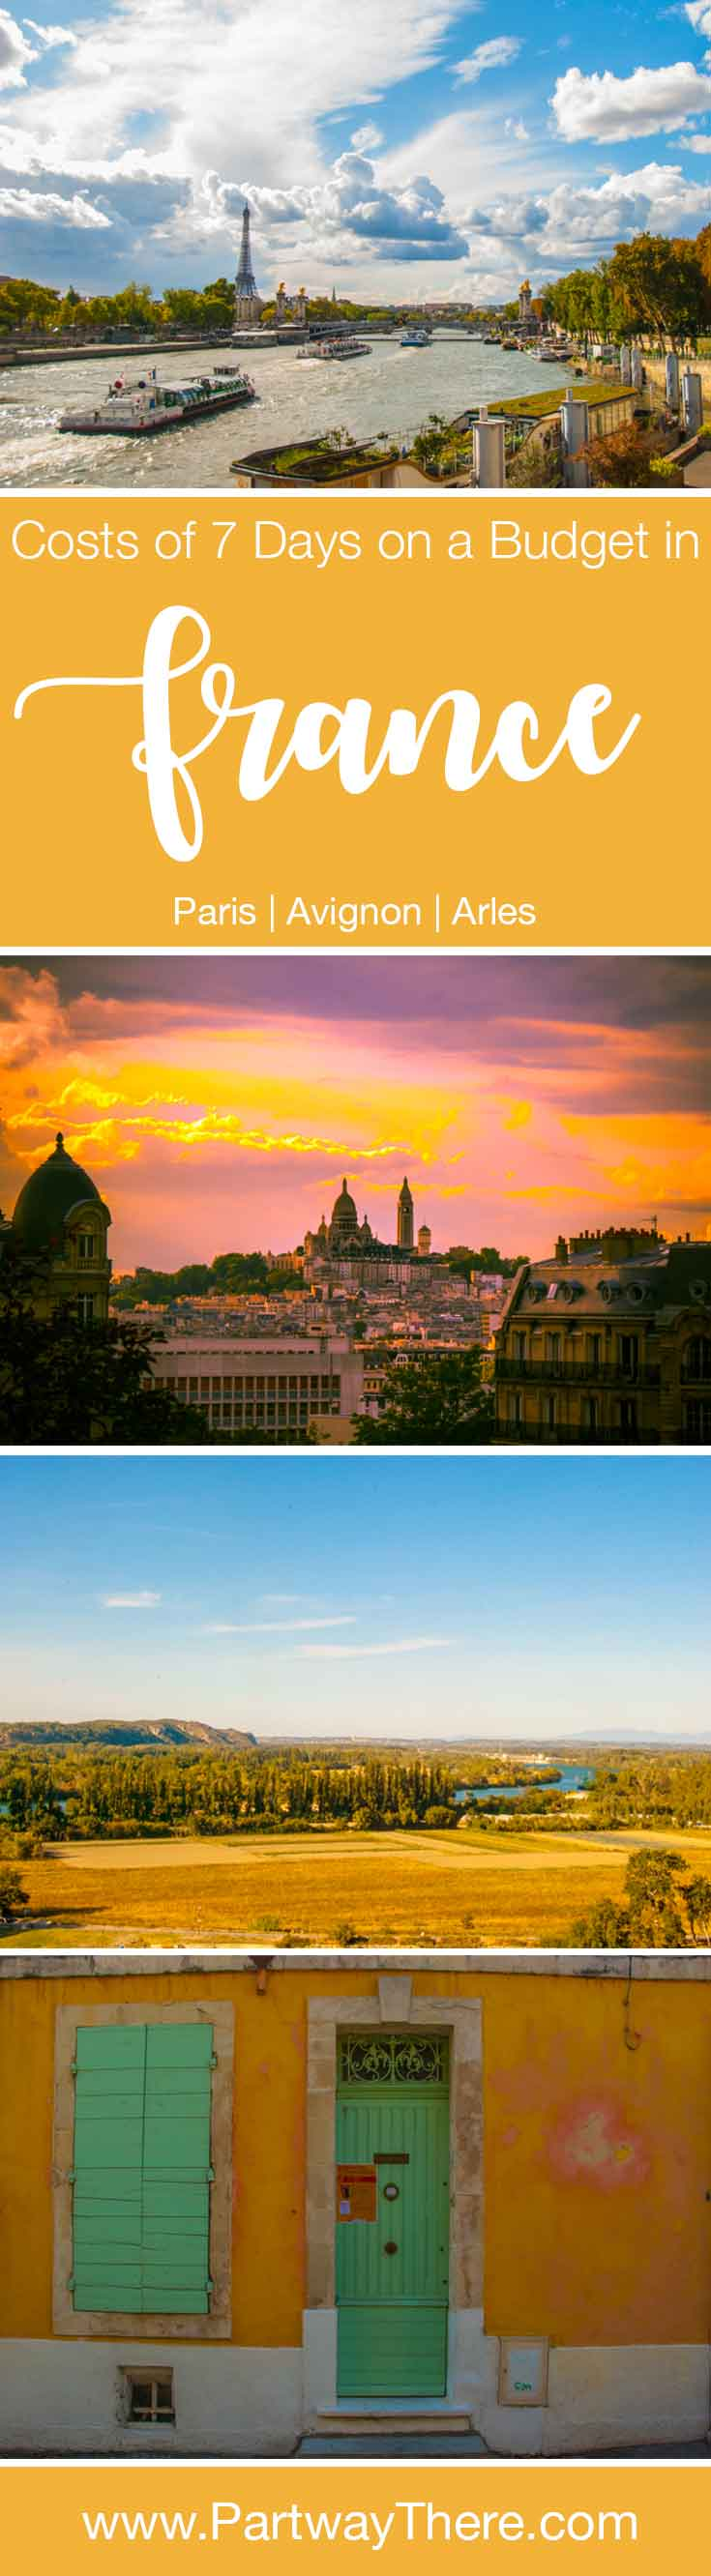 Image for 2017 costs for 7 days on a budget in France, including Arles, Avignon, and Paris